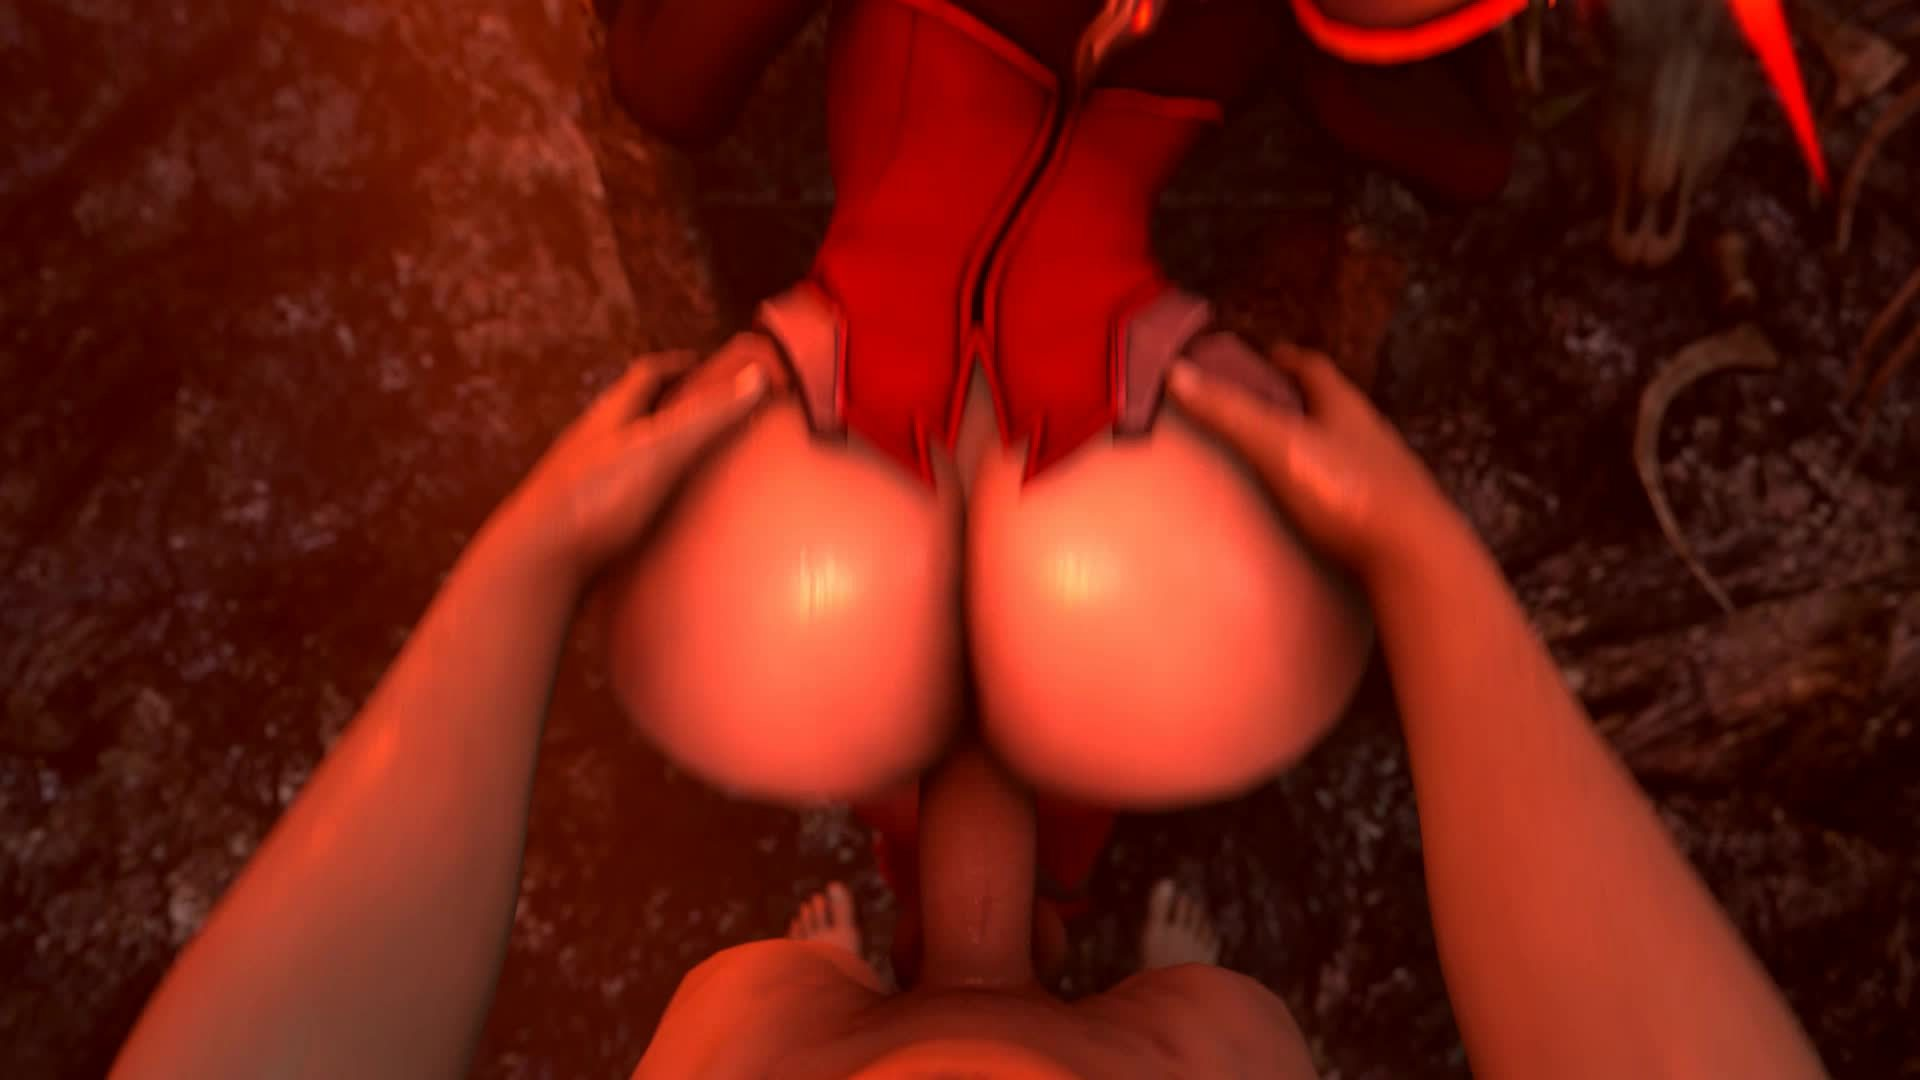 Nfs animated sex videos nude pictures